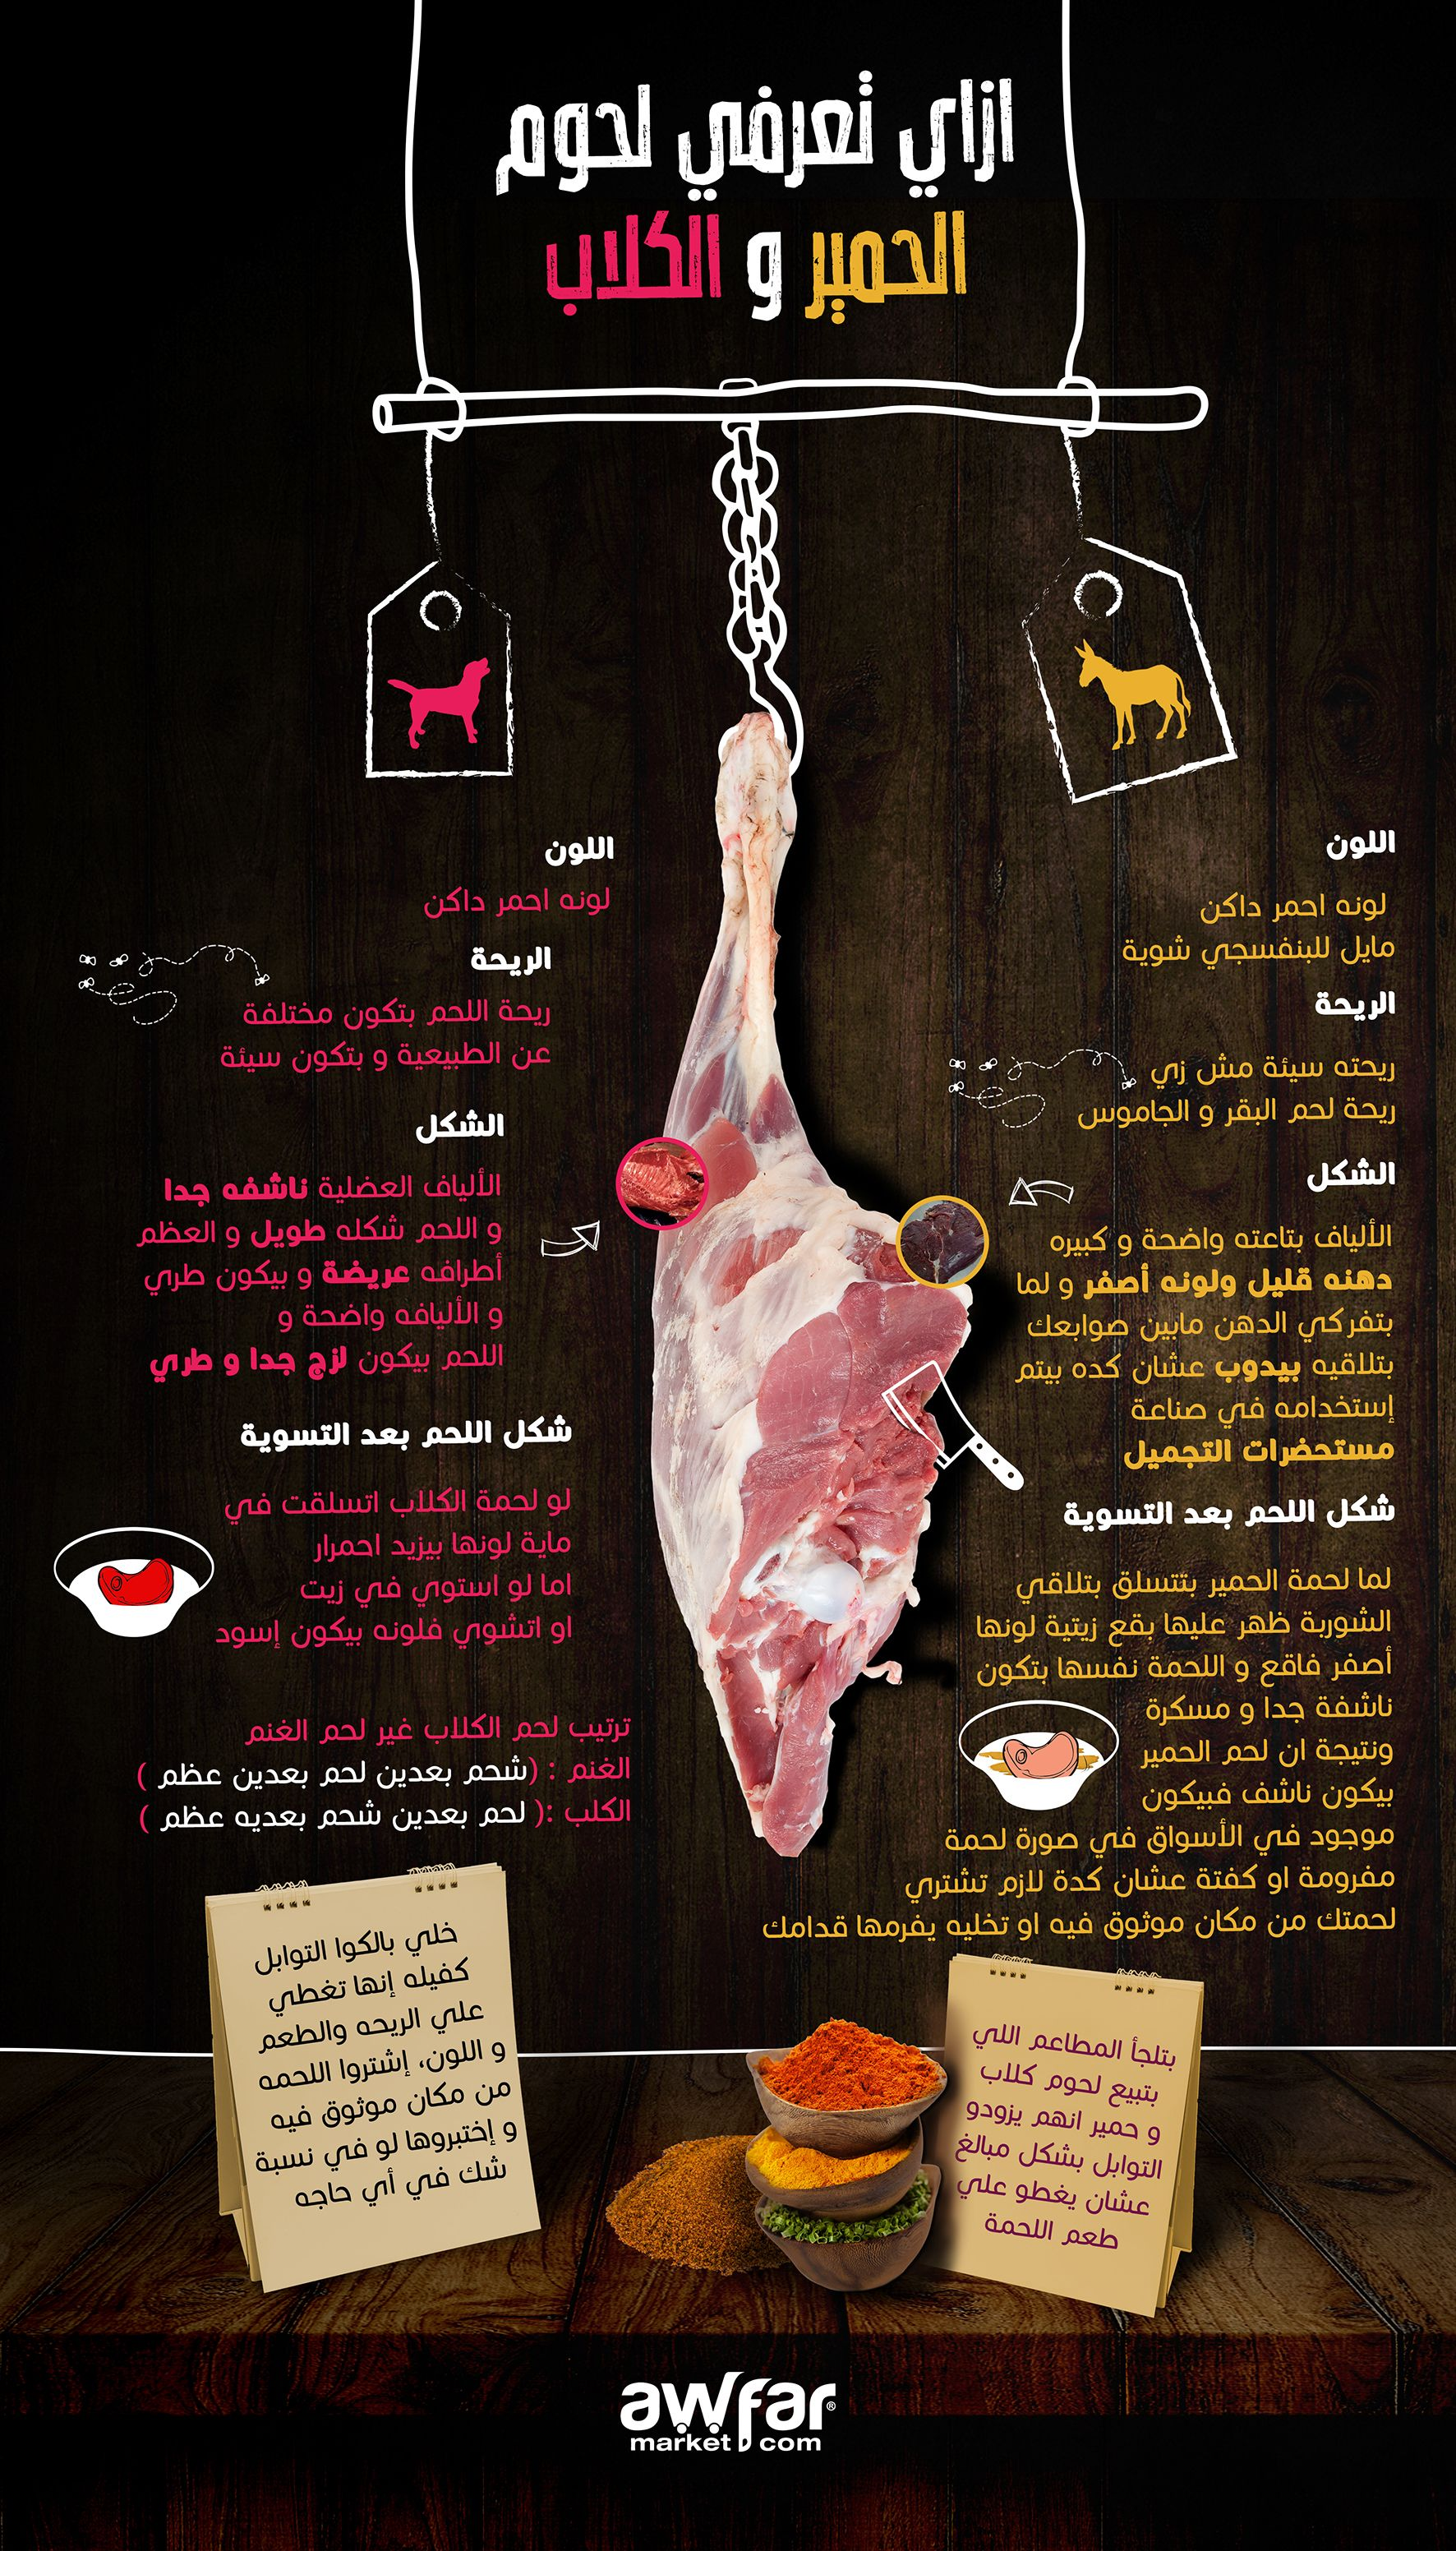 Dogs vs donkeys meat food infographic food content